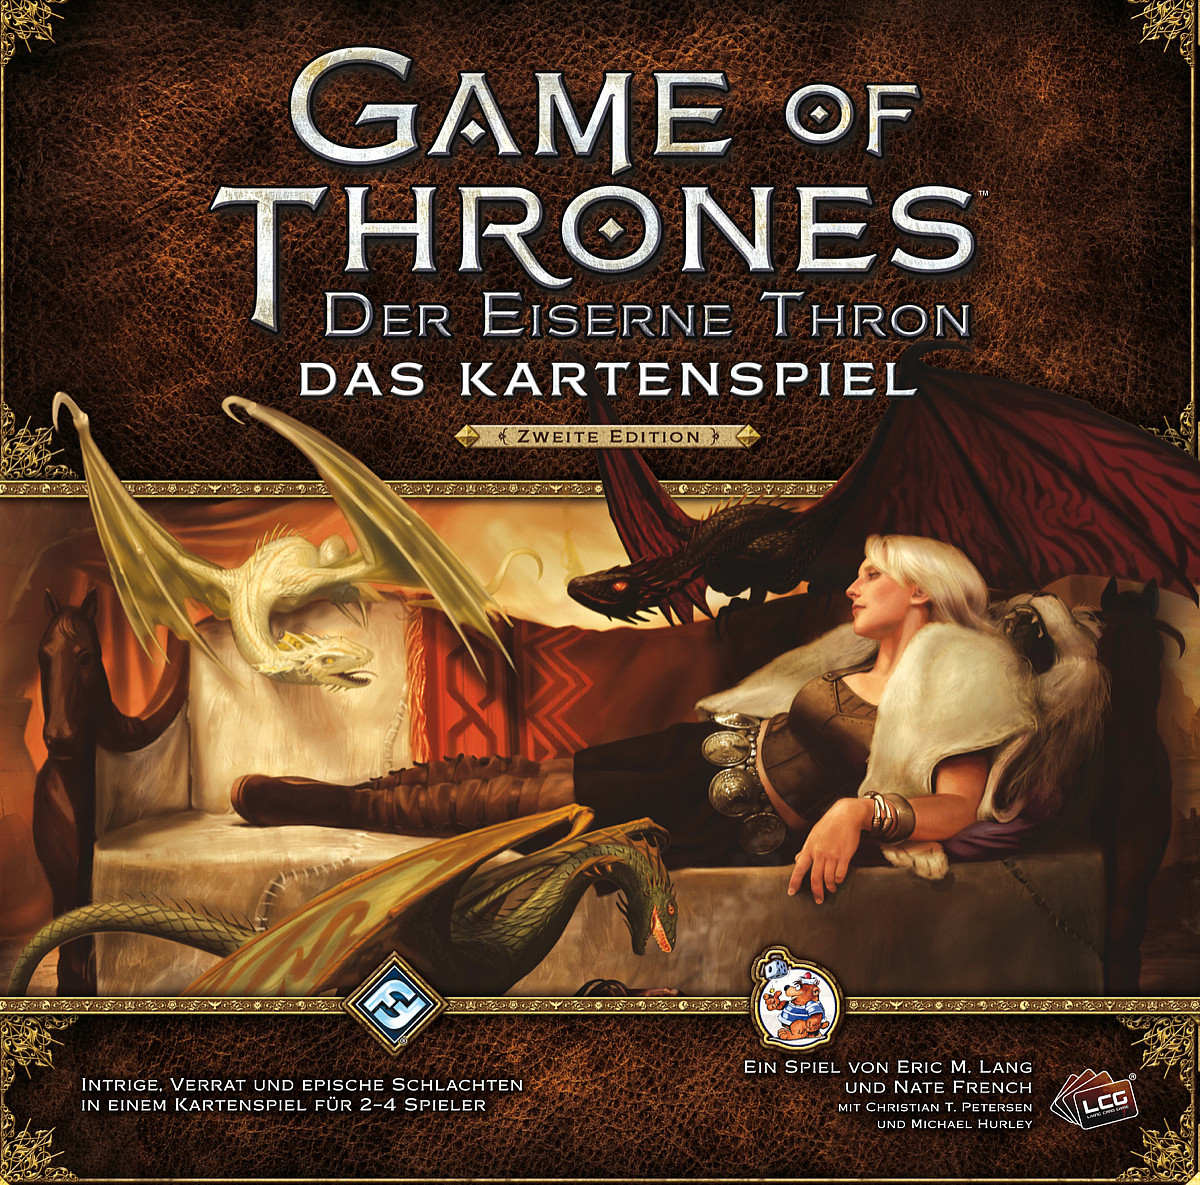 Kartenspiel Game of Thrones - Der eiserne Thron bei Amazon bestellen